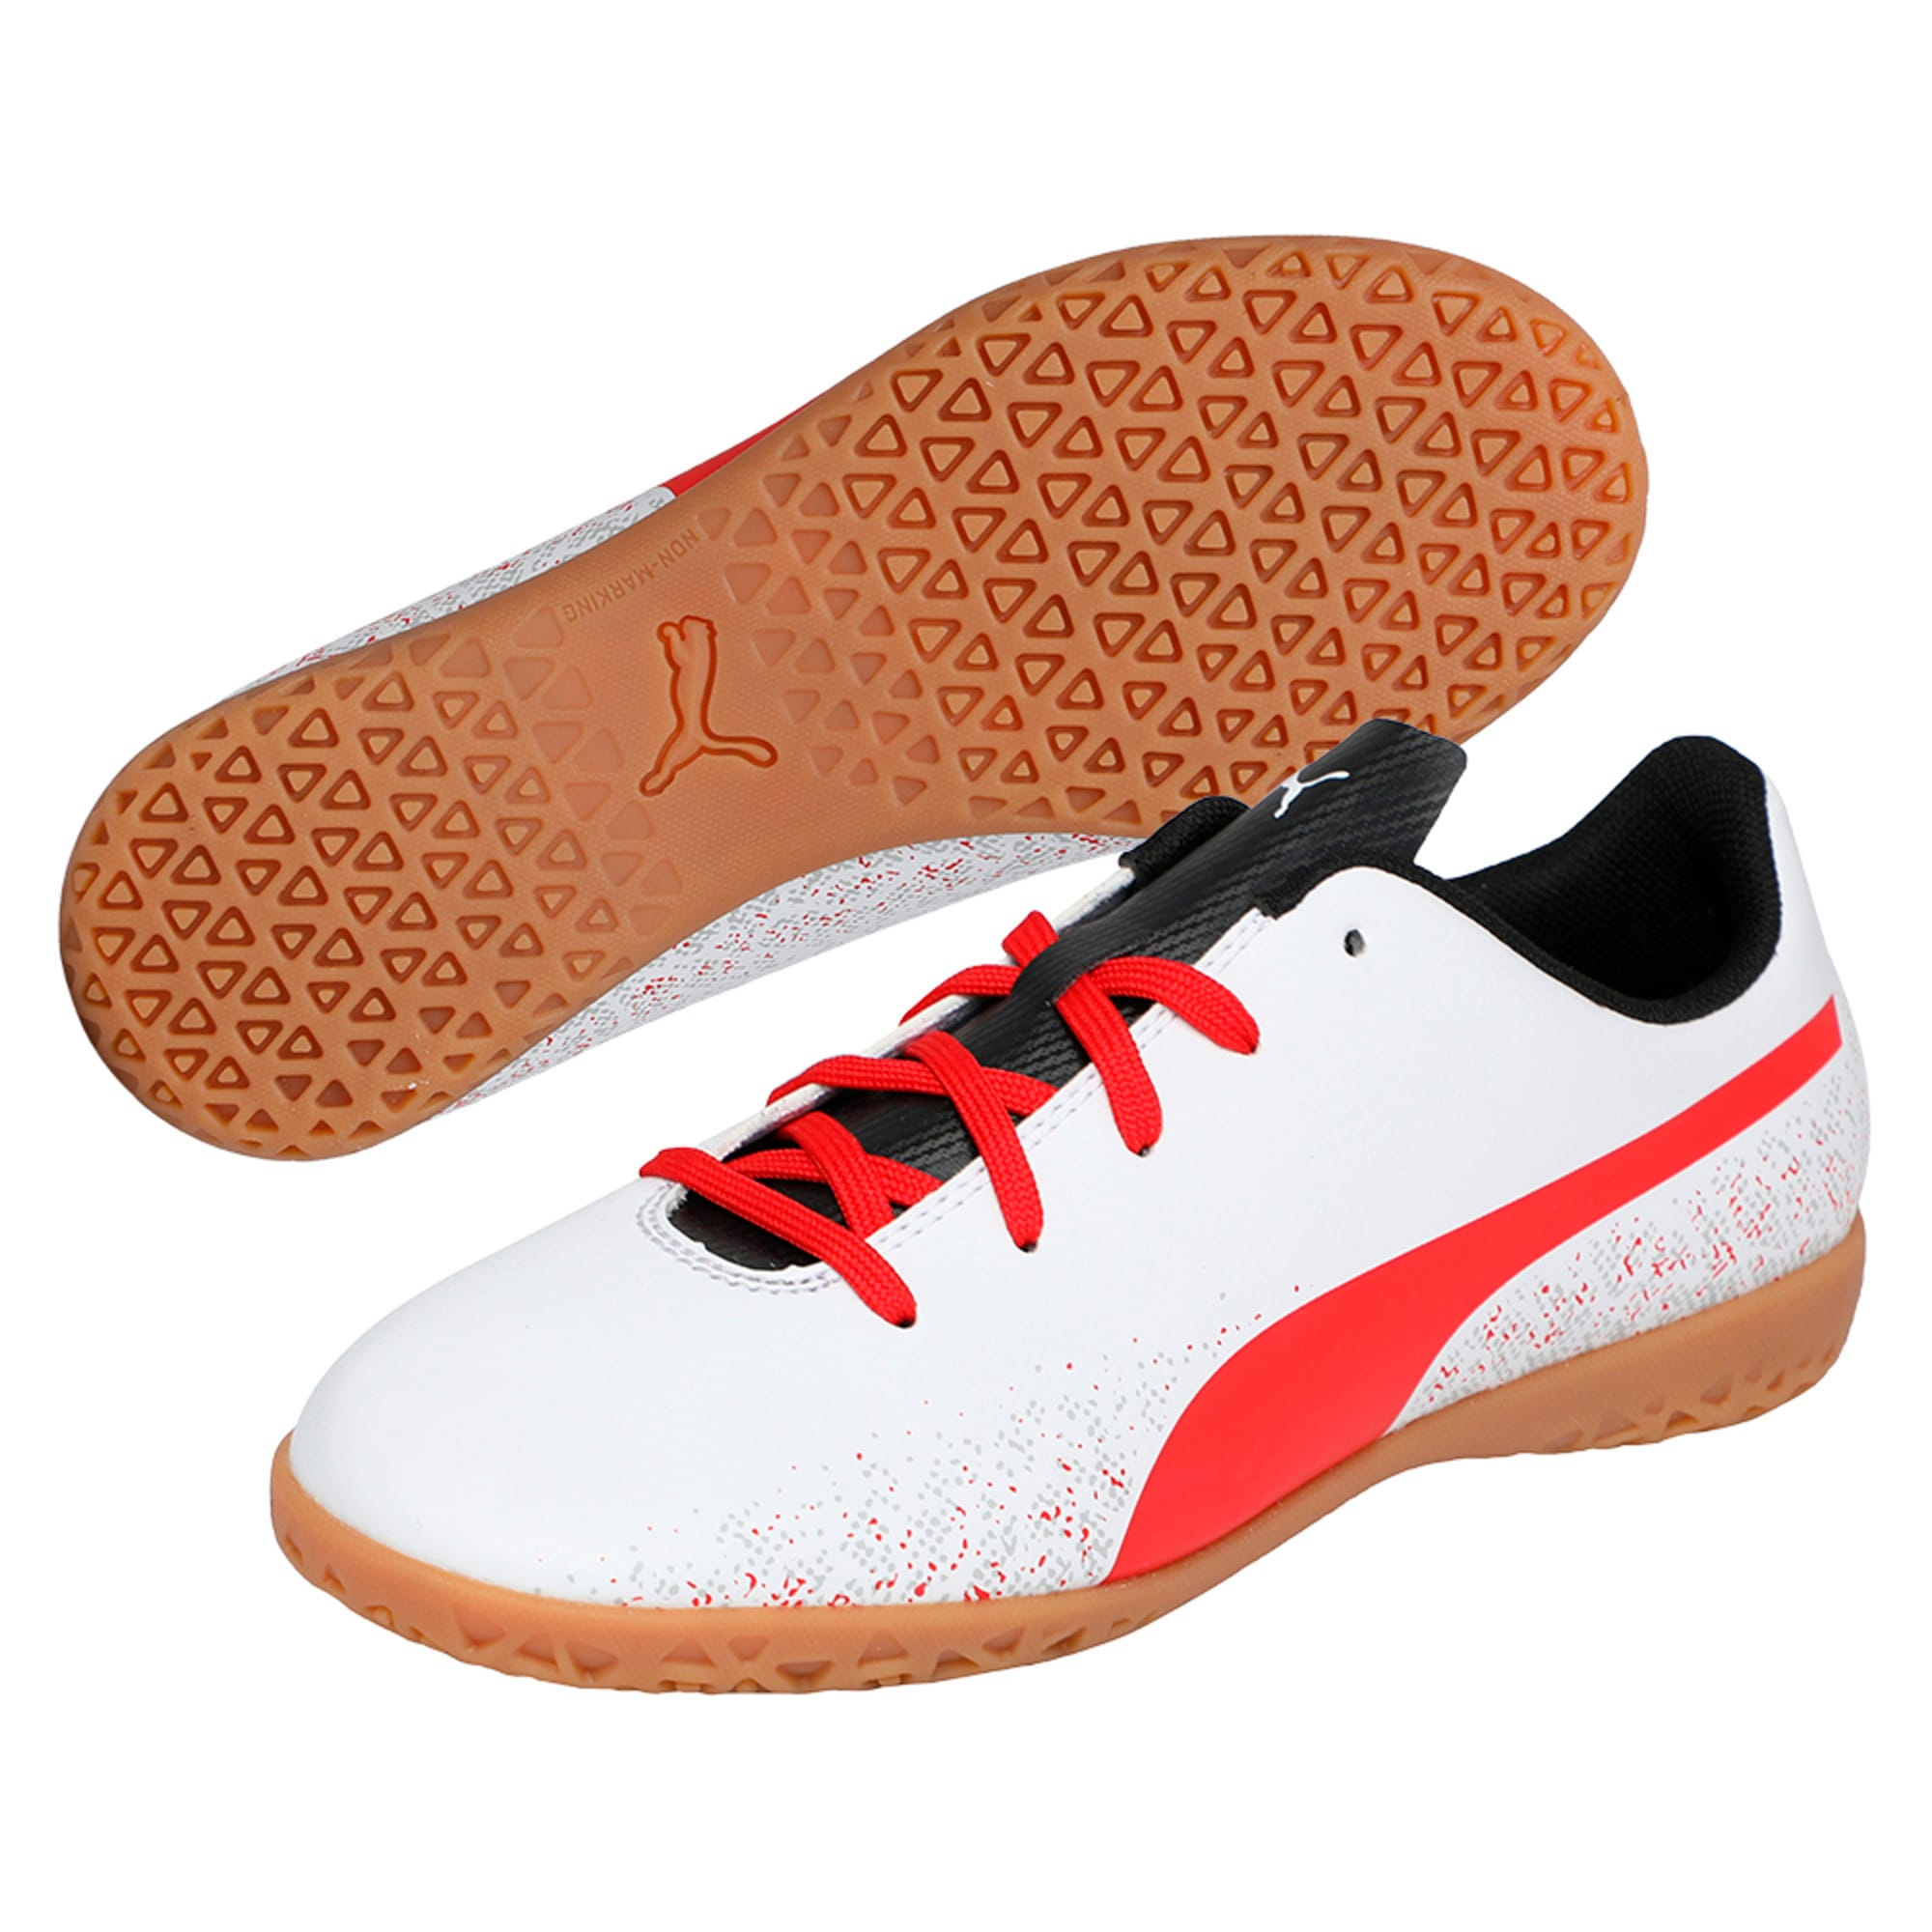 Thumbnail 6 of Truora IT Kids' Indoor Training Shoes, White-Flame Scarlet-Black, medium-IND